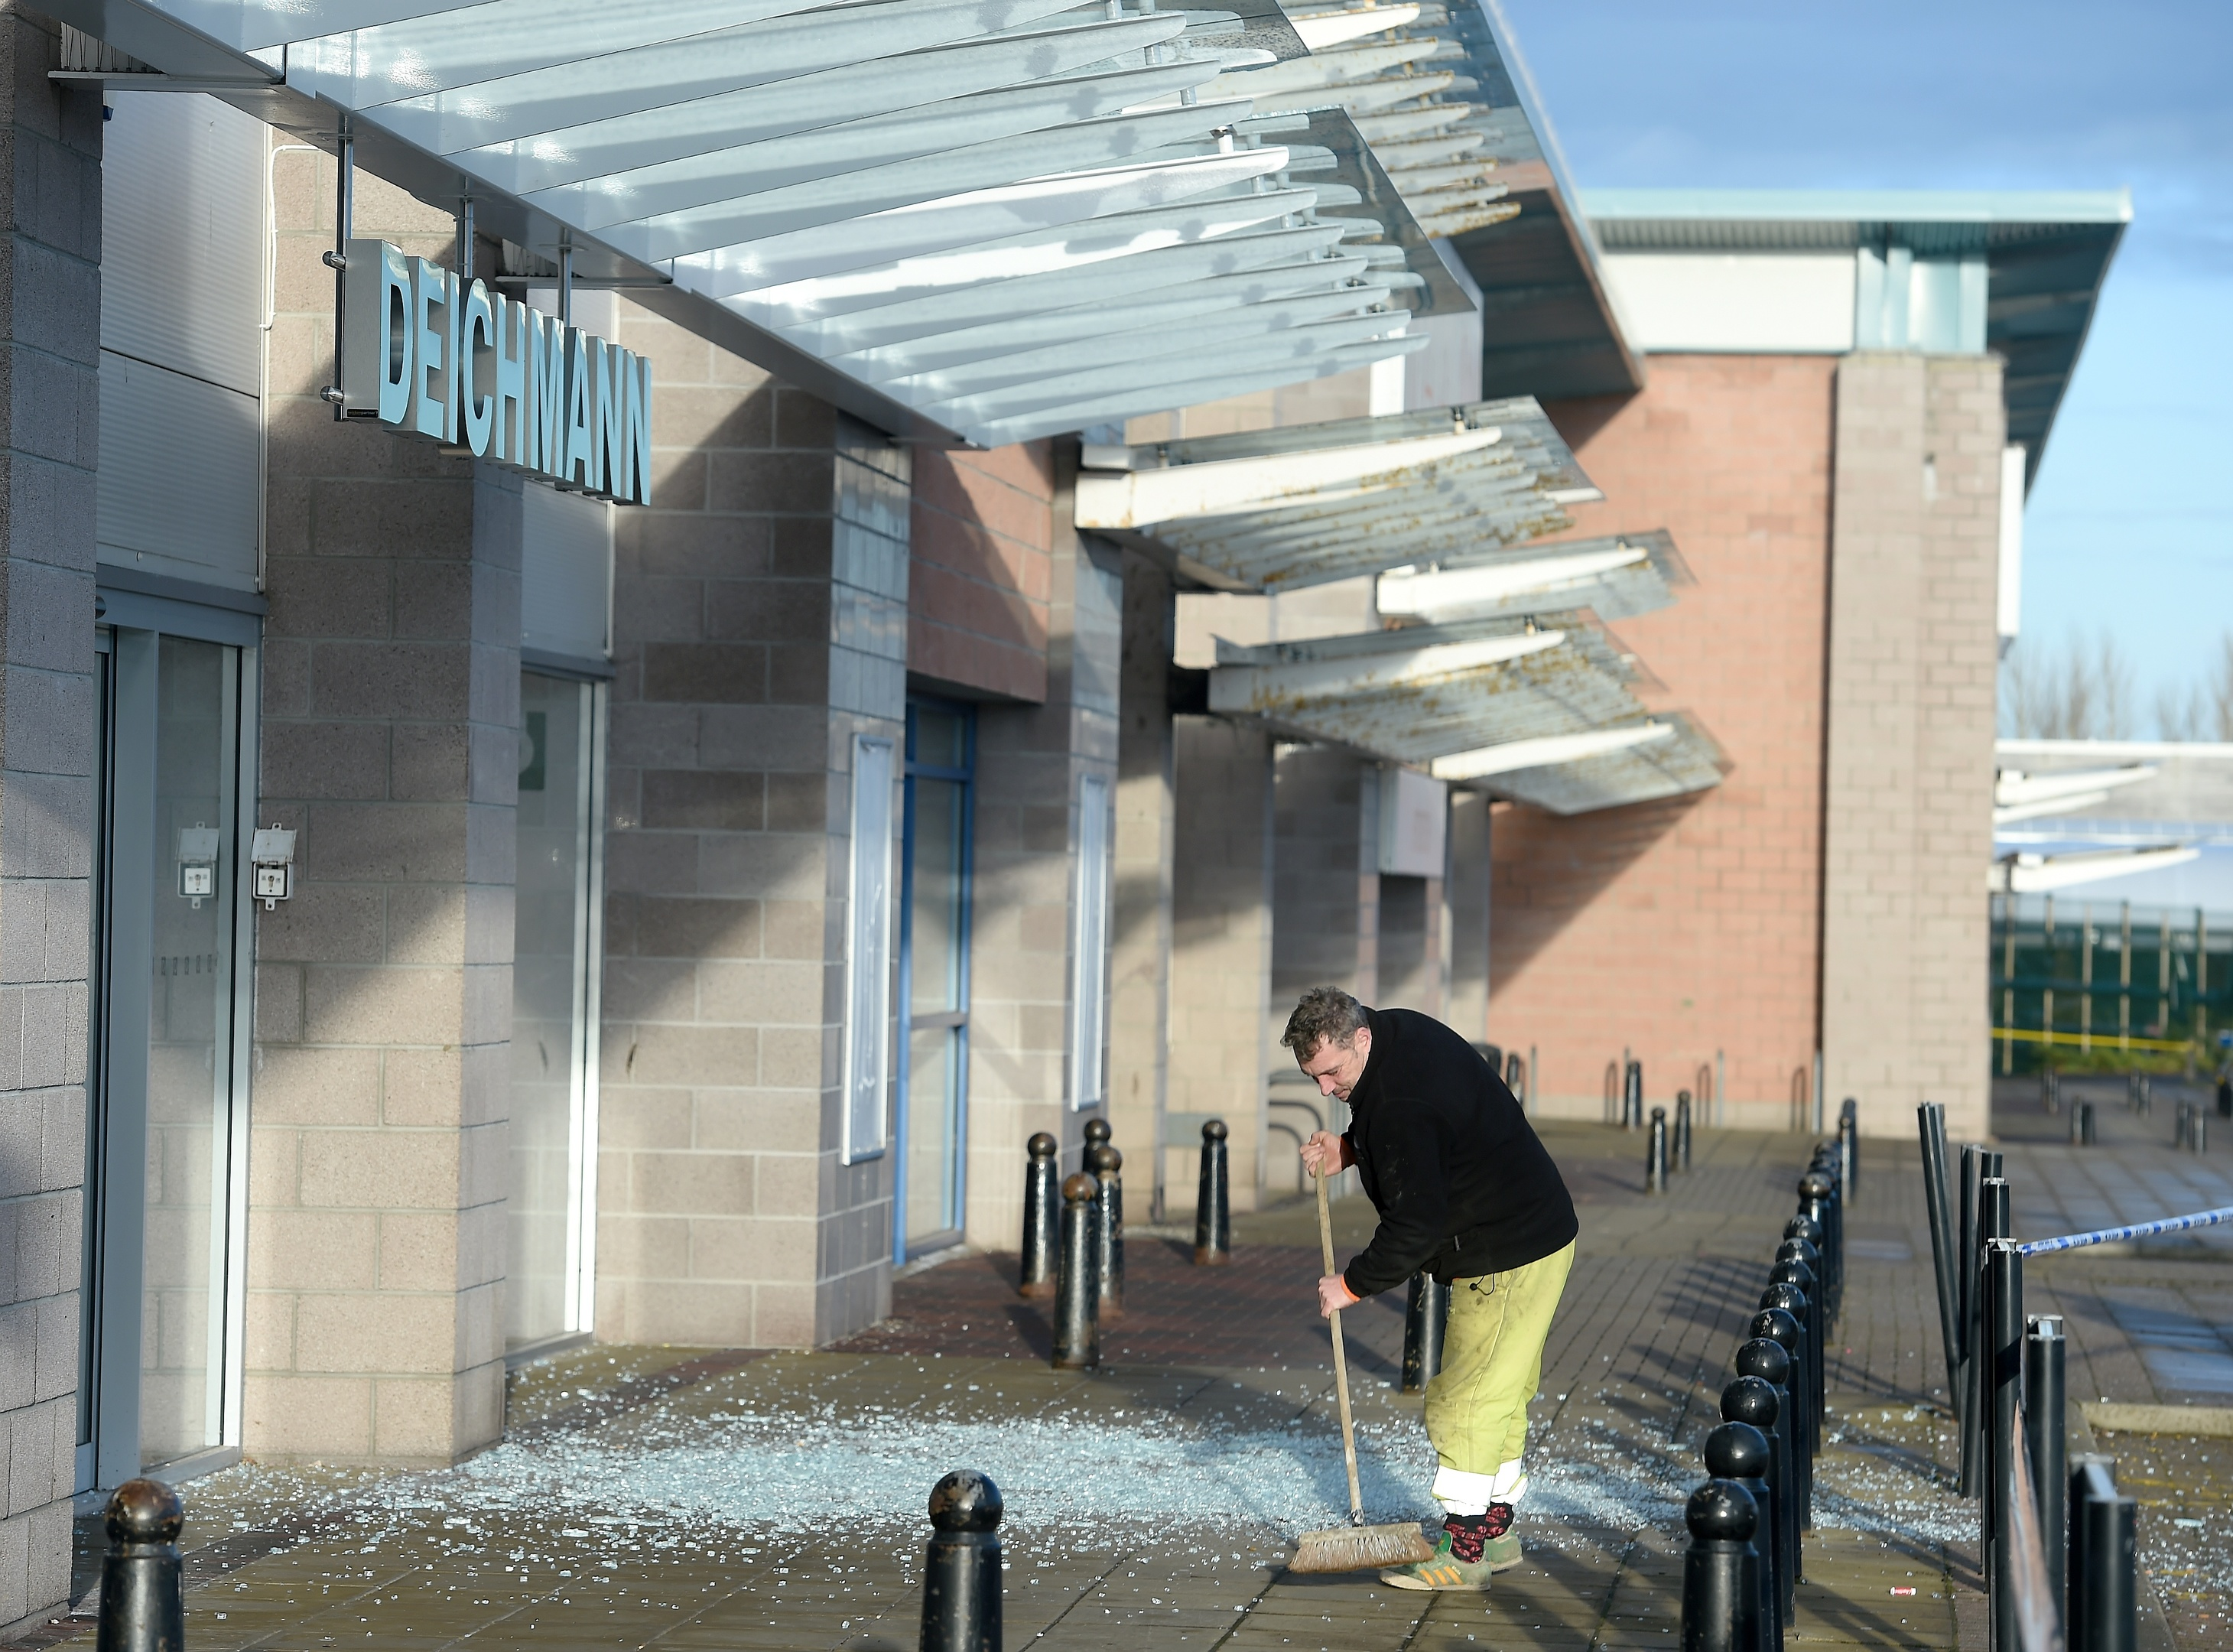 The clear-up begins following the overnight shattering of a pane of glass above the pedestrian walkway. Picture by Sandy McCook.